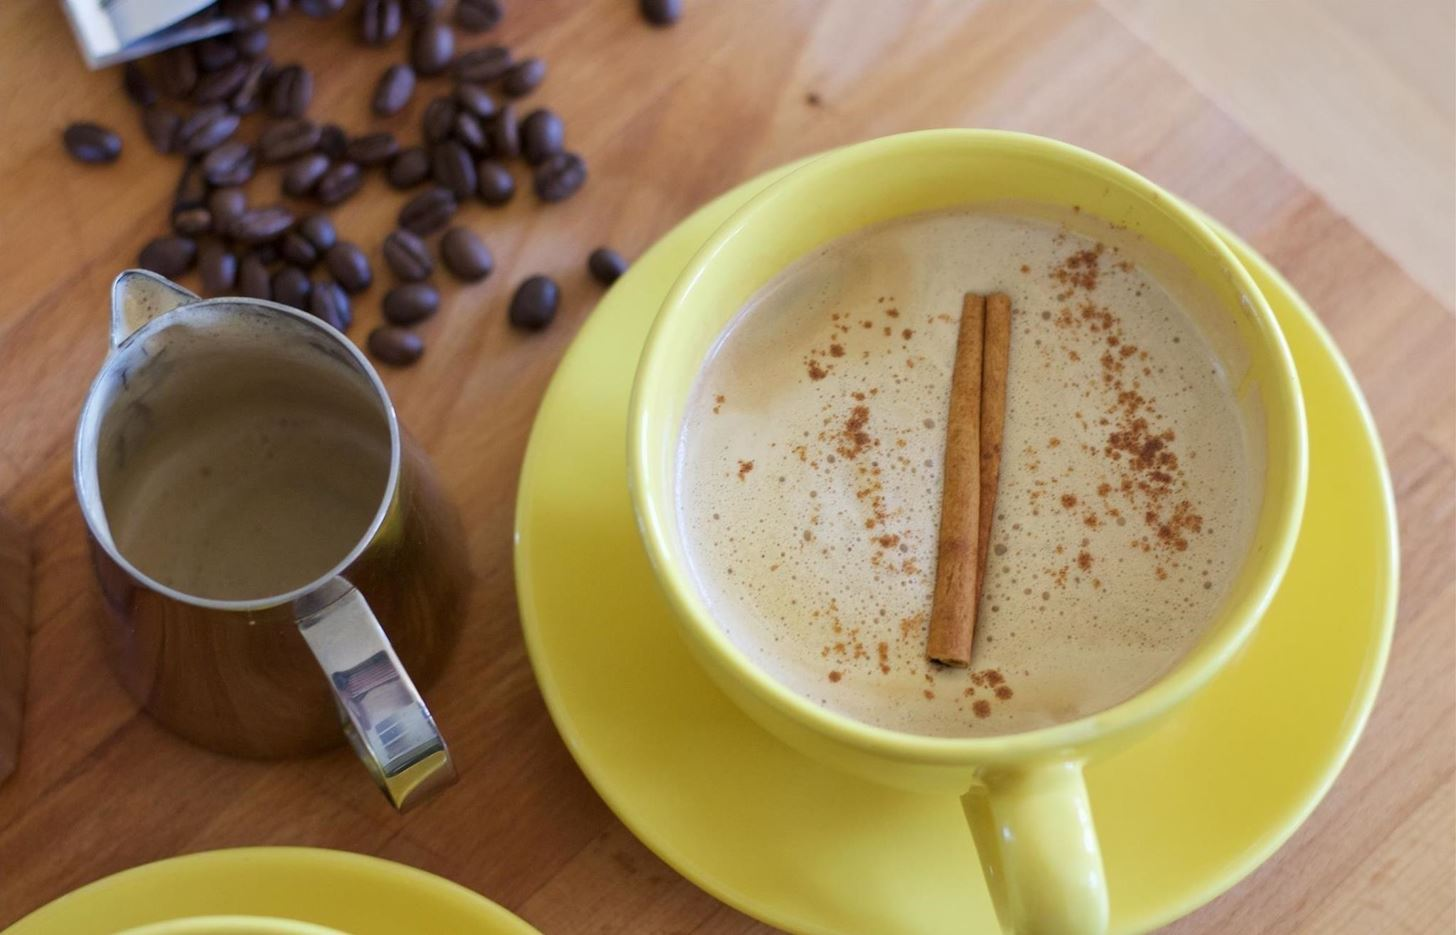 How to Clone Starbucks' Secret Dirty Chai Latte